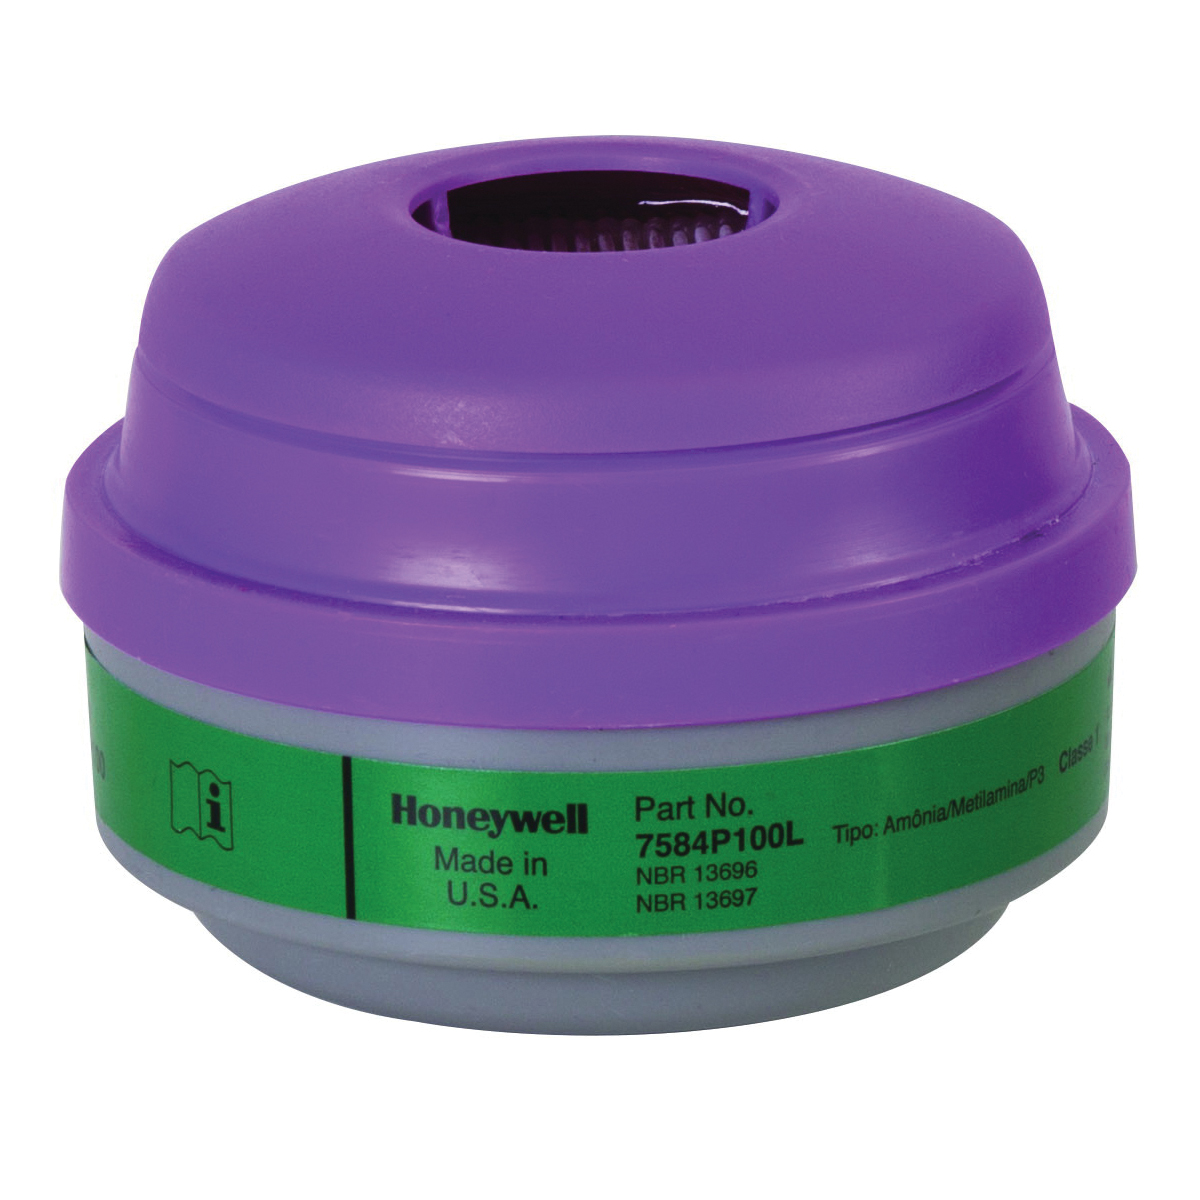 North® by Honeywell 7584P100L Combination Cartridge, For Use With 5400, 5500, 7600 and 7700 Series Respirators, P100 Filter Class, 0.999 Filter Efficiency, Thread Connection, Resists: Aerosols By Removing Dusts, Fumes, Fibers, Mists and other Particles